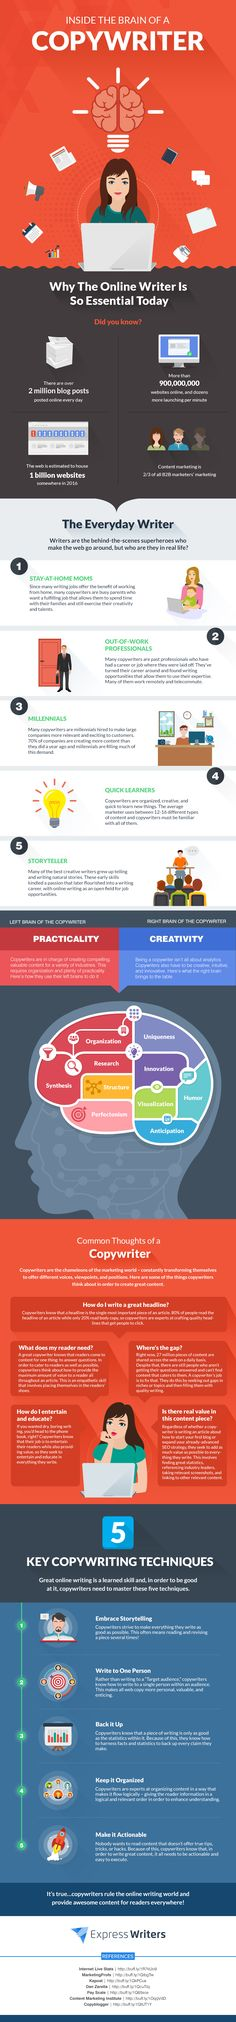 How does the brain of an in-demand copywriter work? What skill sets are they are always polishing? All of this and more in our infographic! Business Writing, Business Tips, Online Business, Business Infographics, Grant Writing, Writing Tips, Social Entrepreneurship, Social Enterprise, Social Media Content